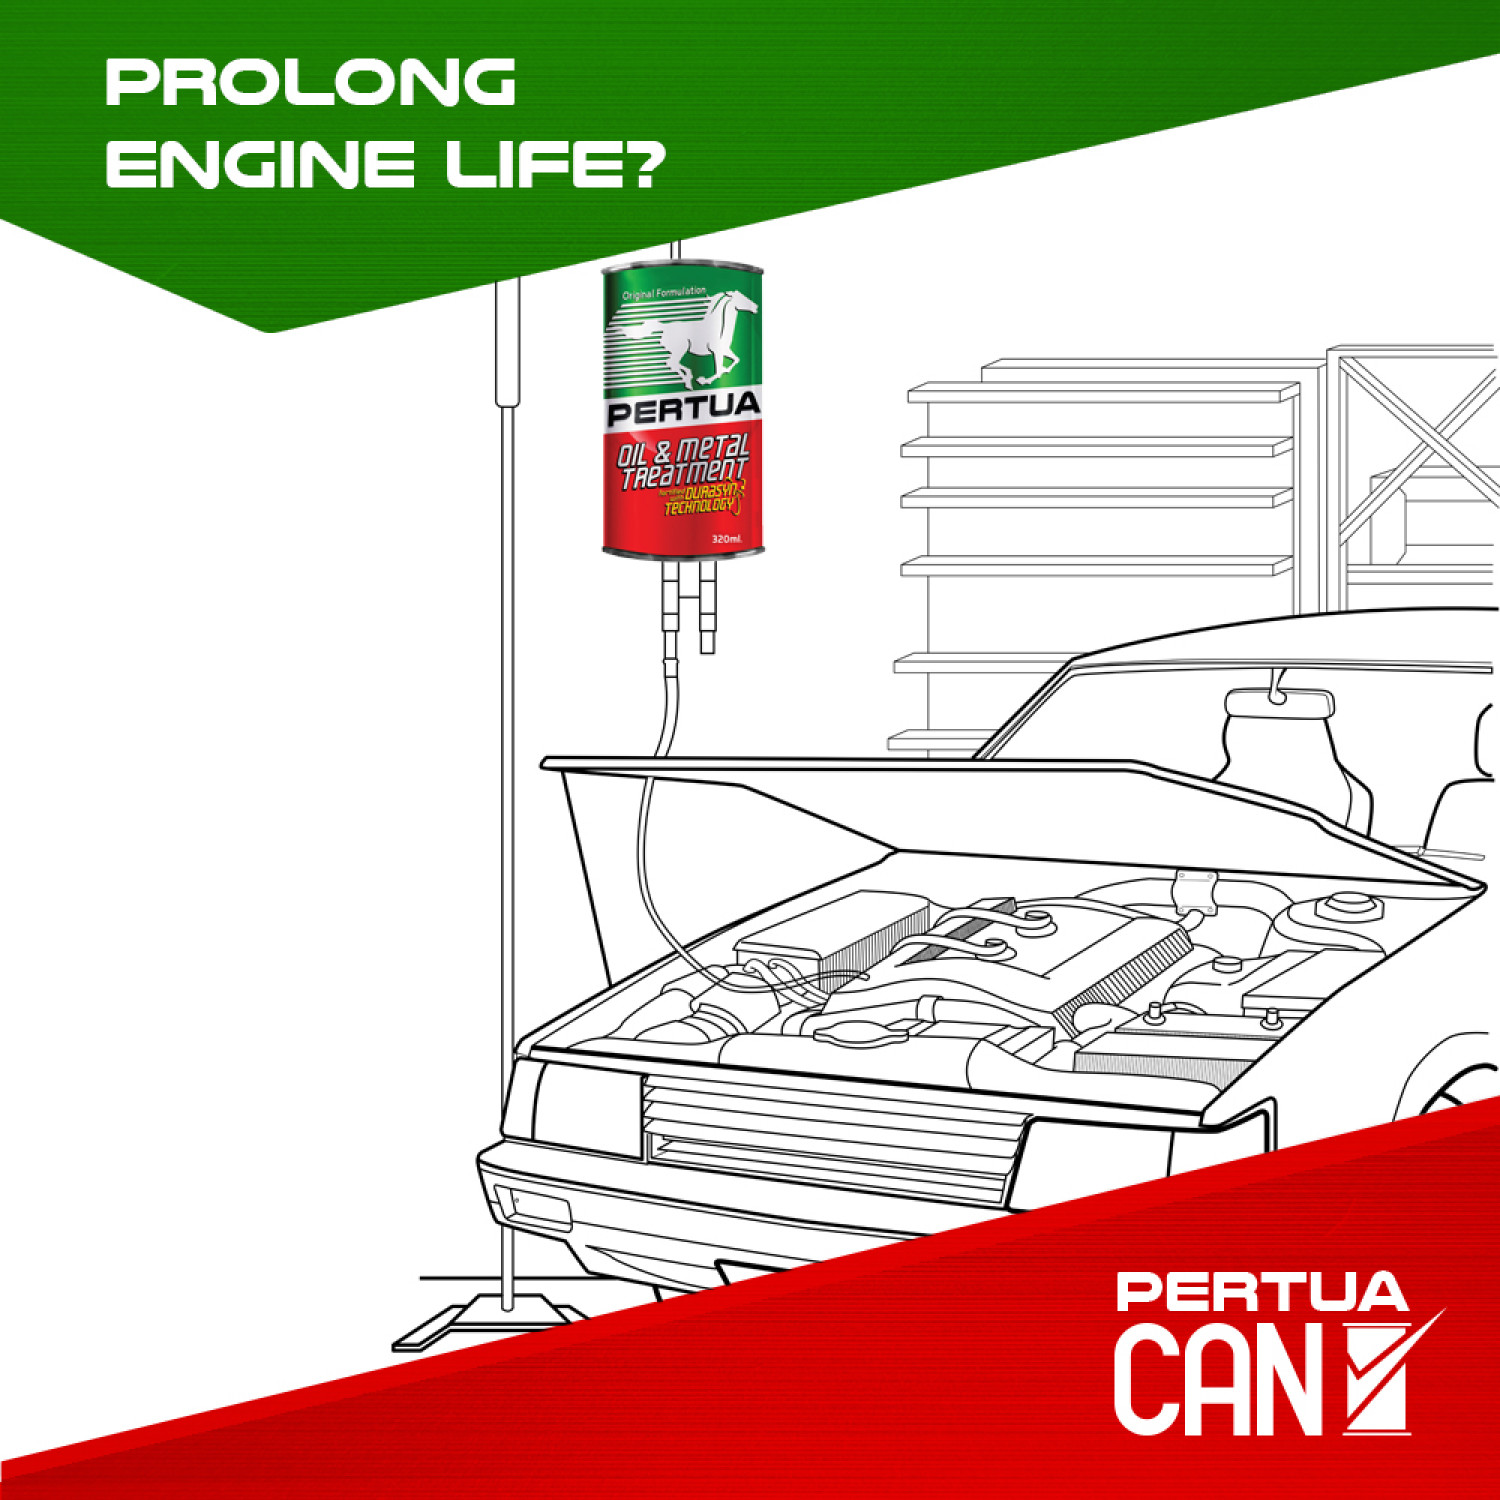 Prolong Engine Life Infographic